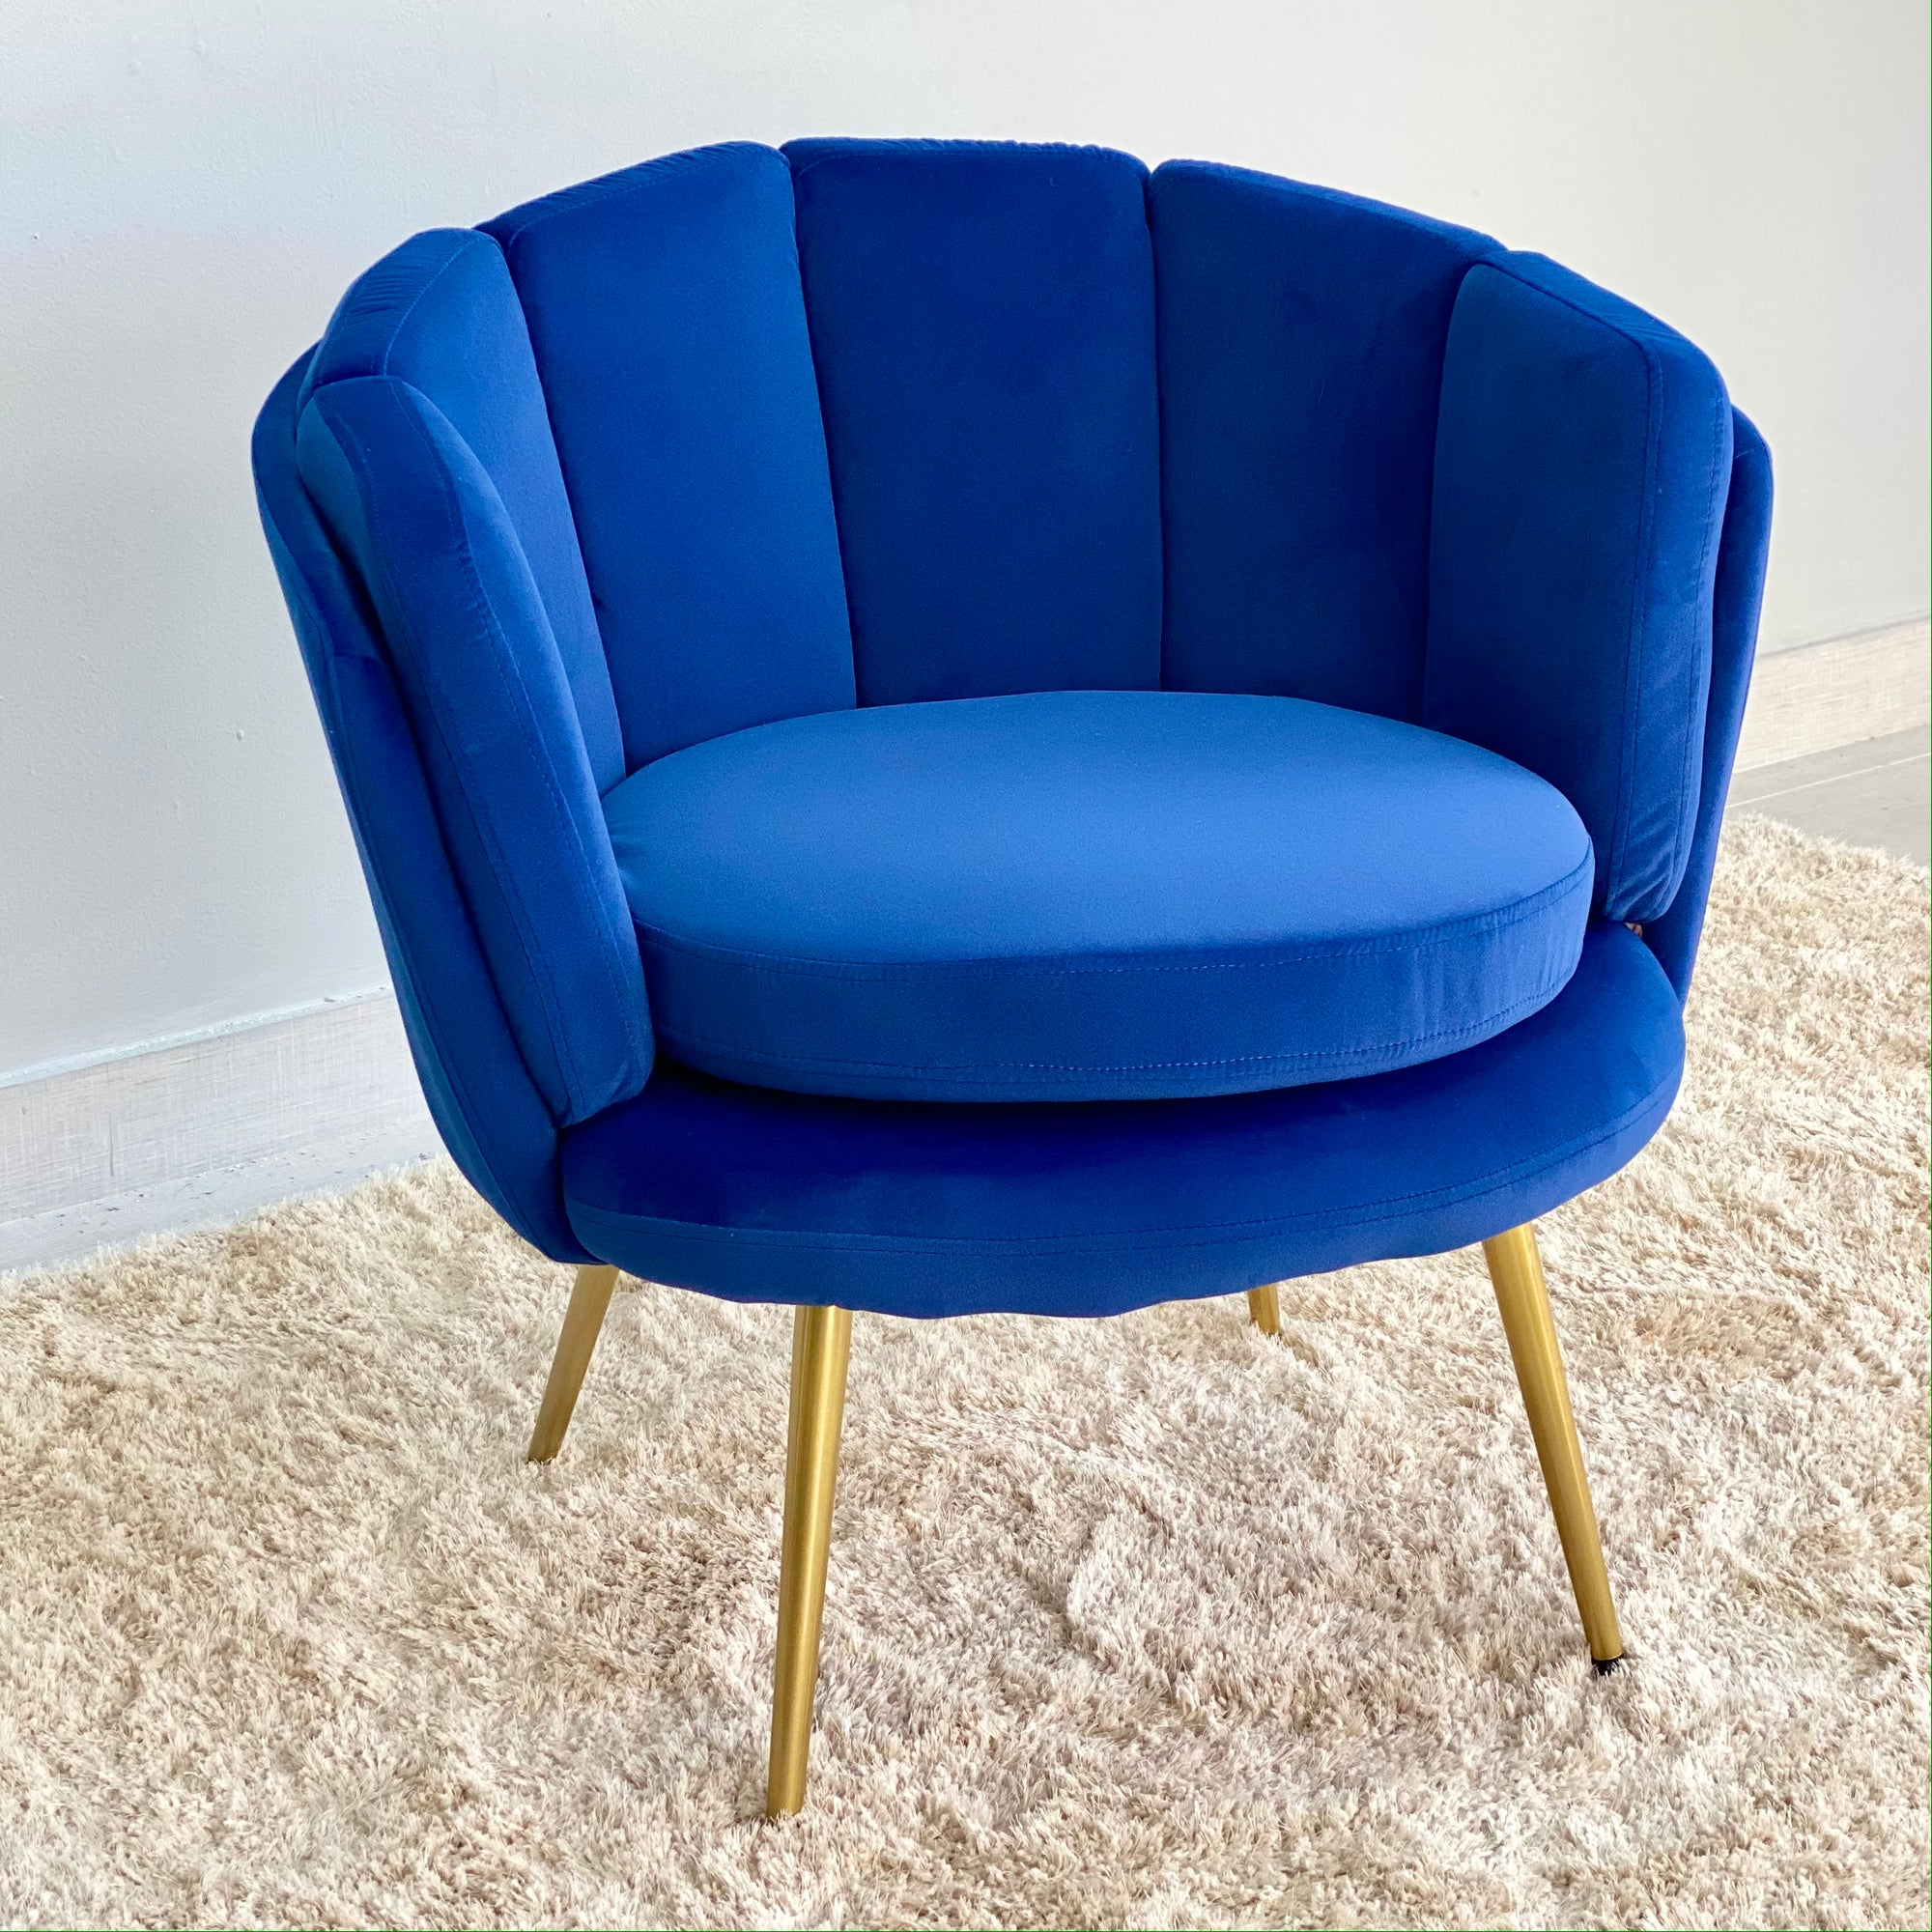 Classic Blue Shell Shaped Chair